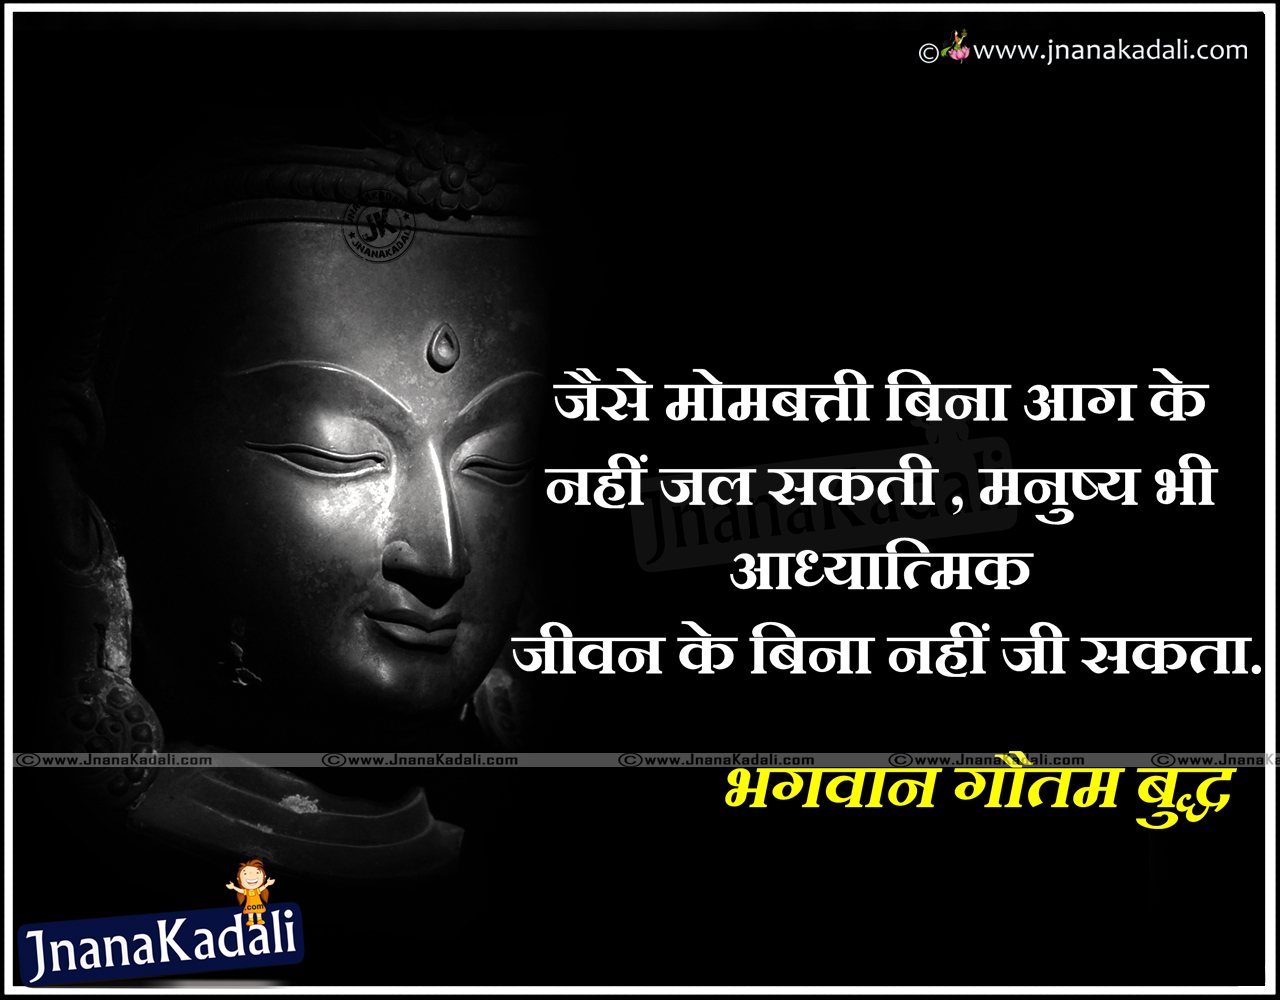 Daily Inspirational Thoughts Gautama Buddha Hindi Best Sayings Images  Jnana Kadali